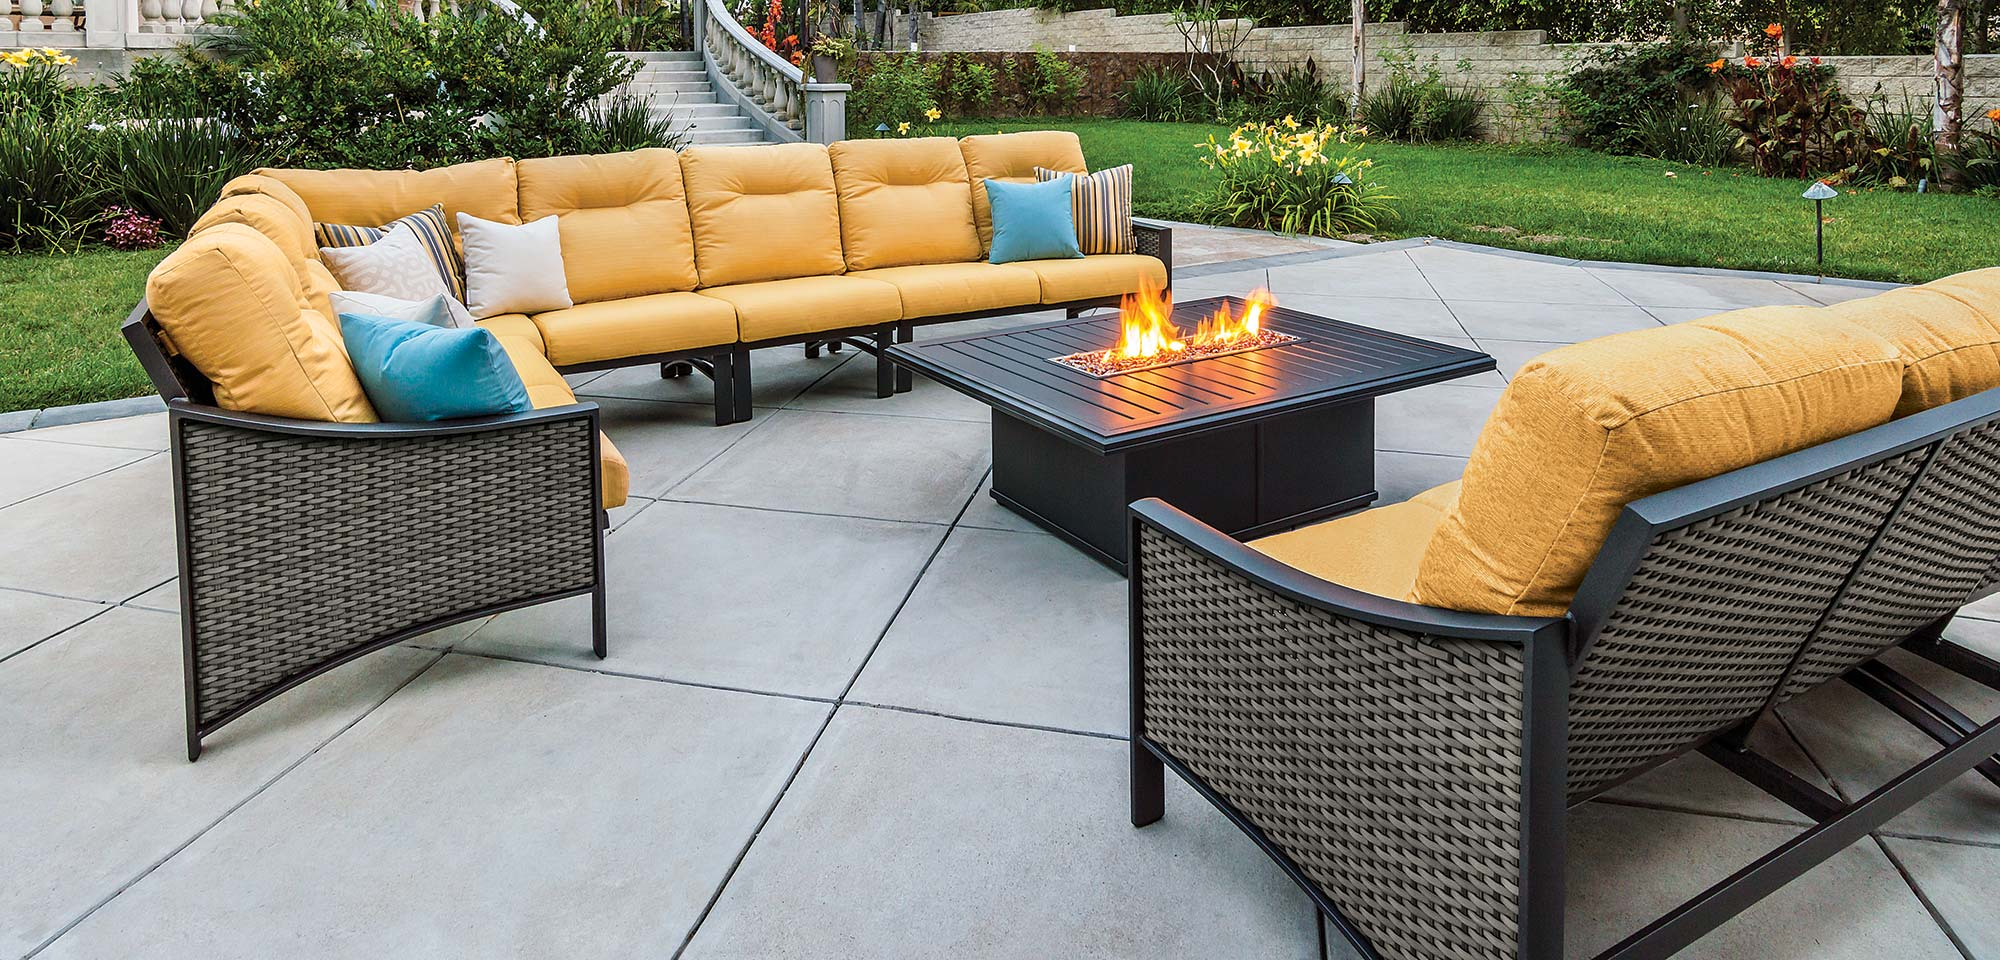 Patio furniture outdoor patio furniture sets for Outdoor patio furniture